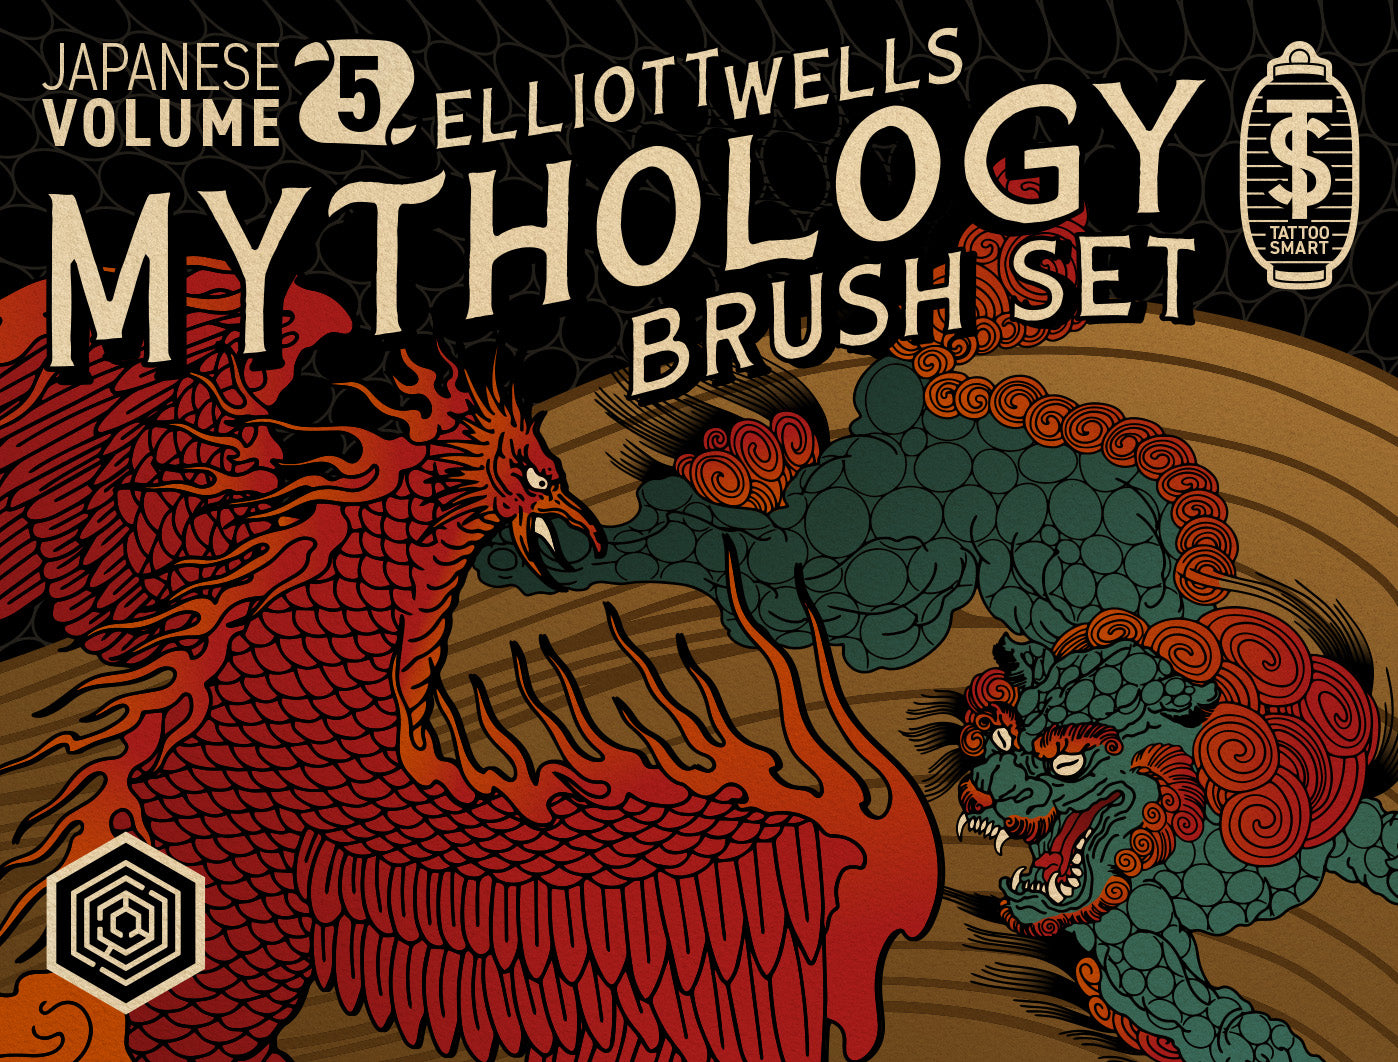 Brush Set: Japanese Vol. 5: Mythology